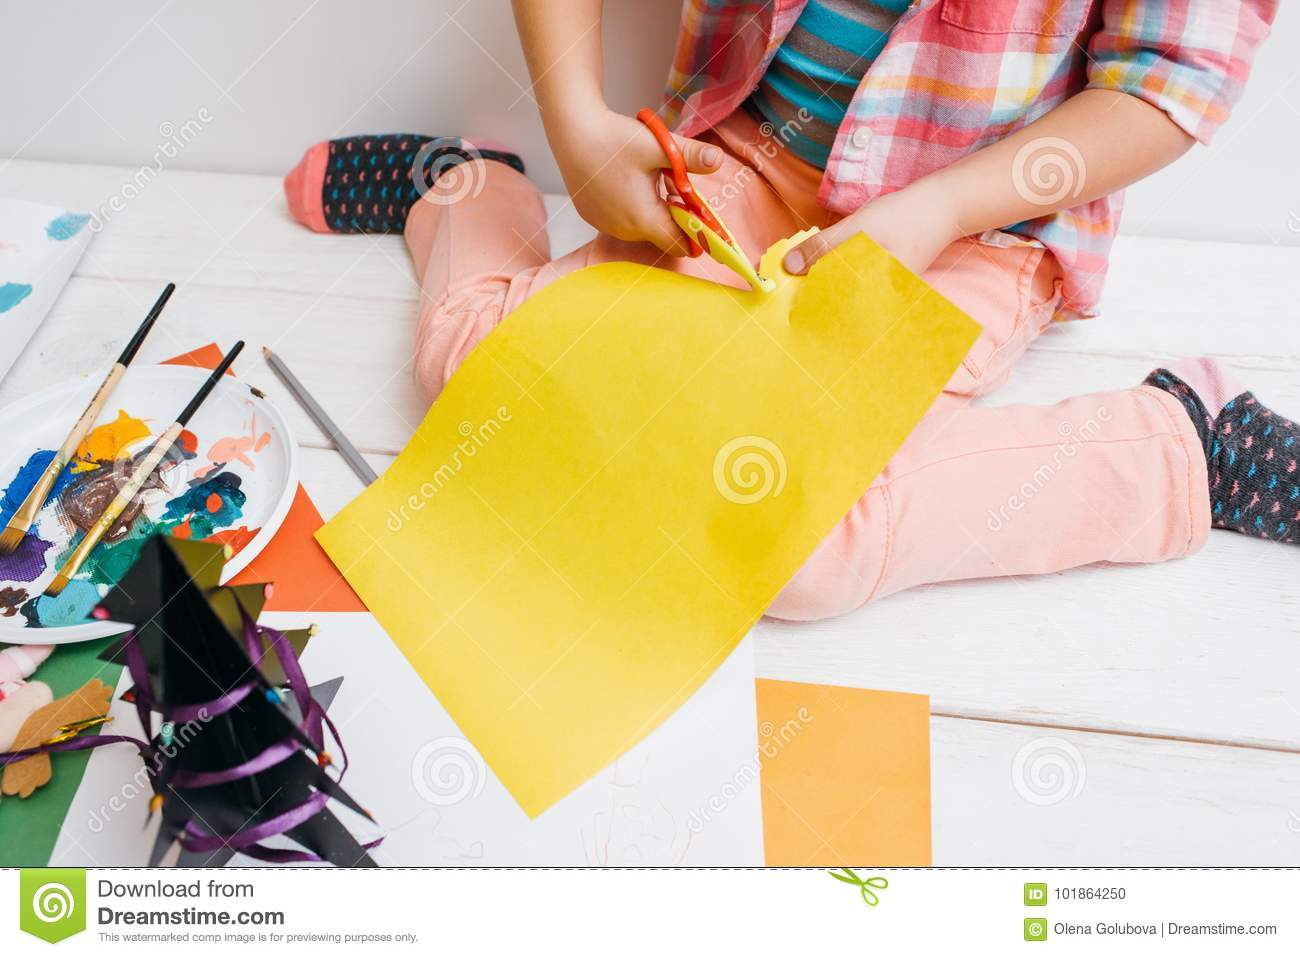 Greeting cards preparation artwork in process stock photo image download greeting cards preparation artwork in process stock photo image of floor early m4hsunfo